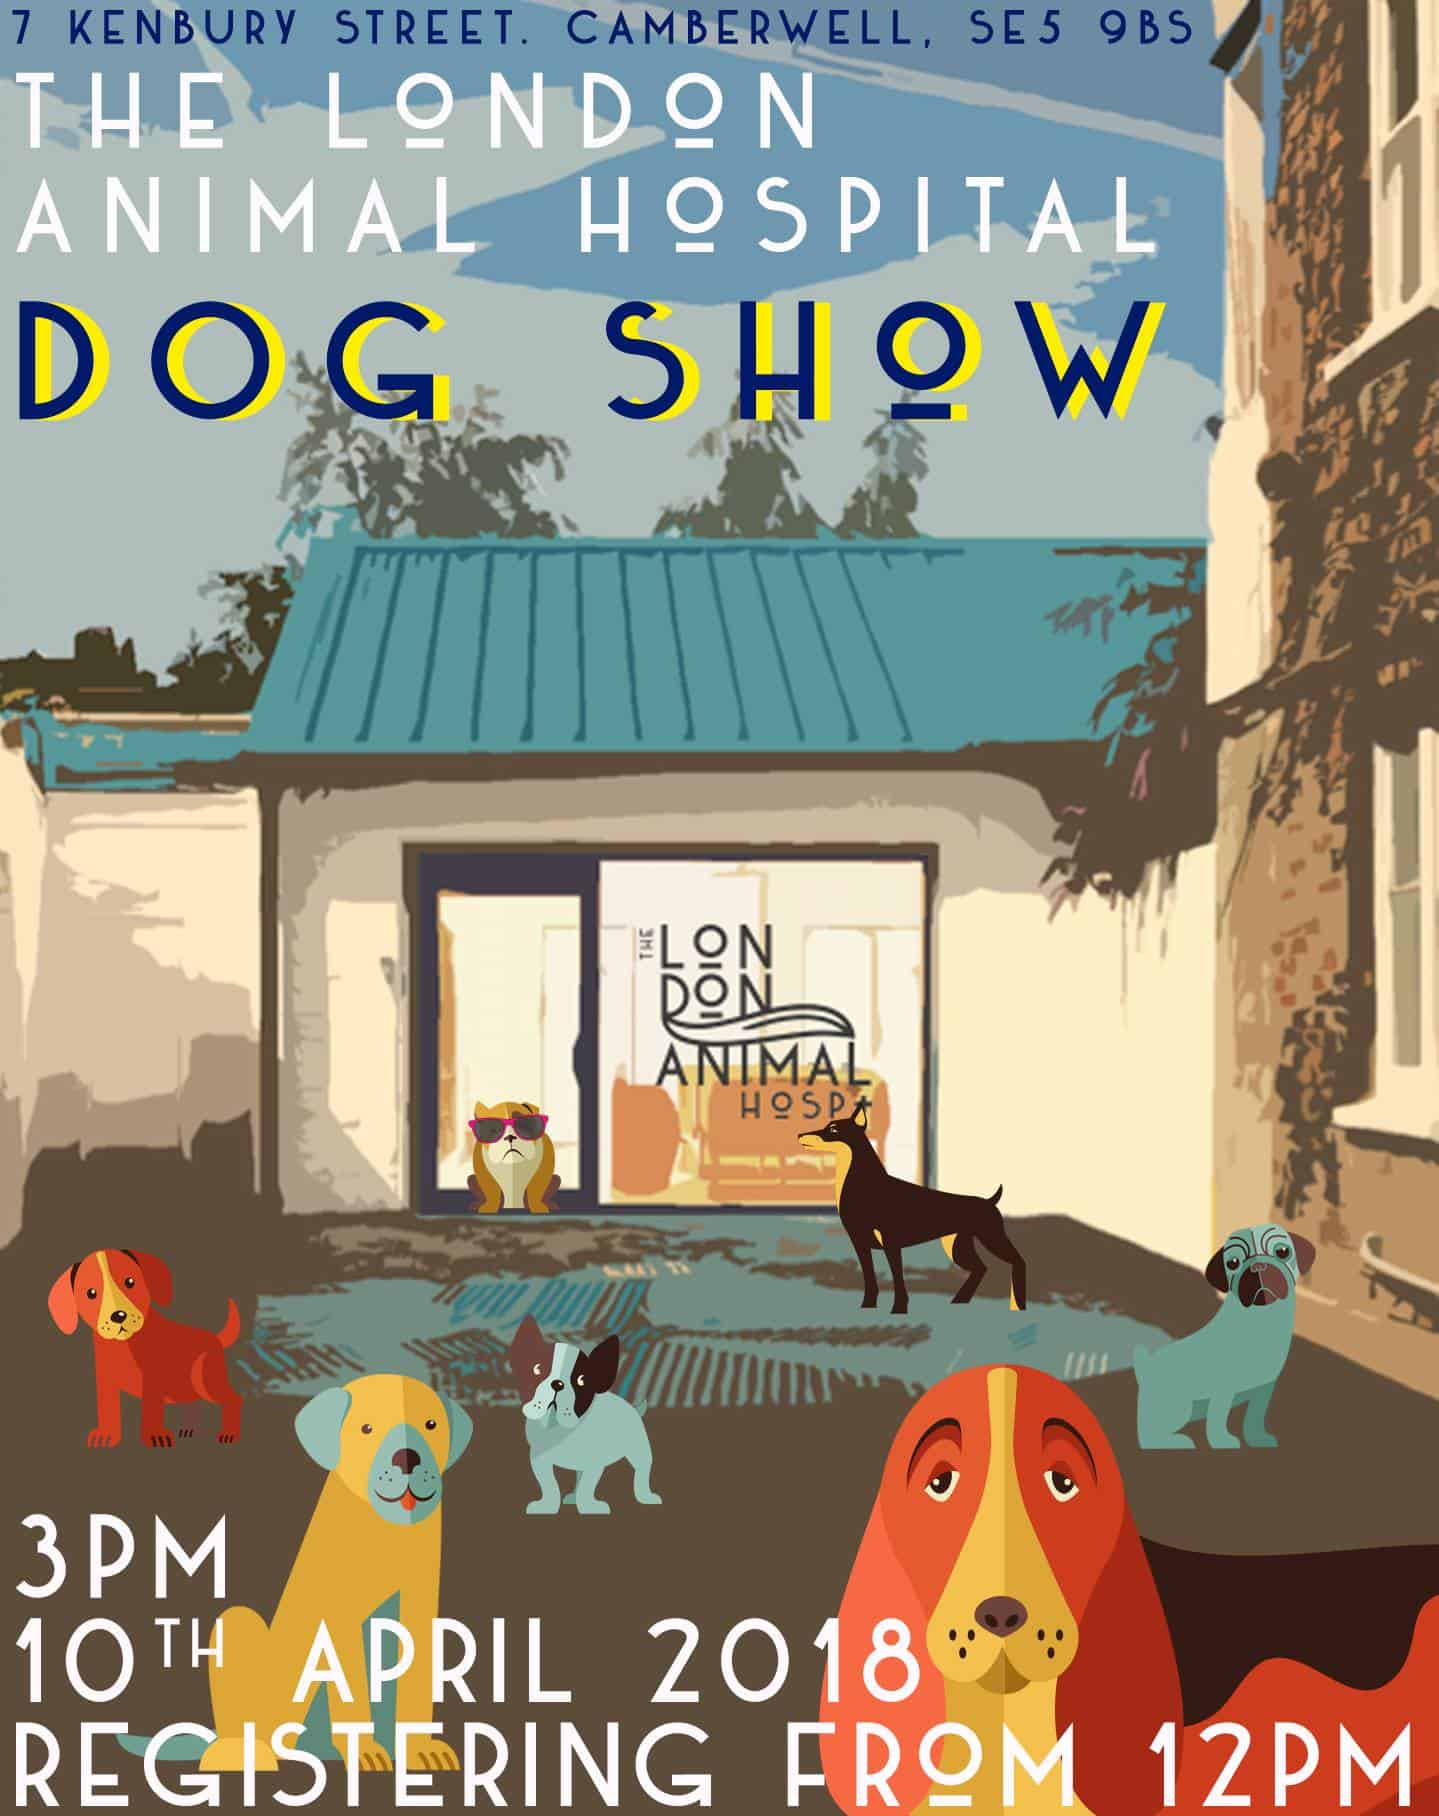 London Dog Events - The London Animal Hospital 1st Birthday Party & Dog Show 2